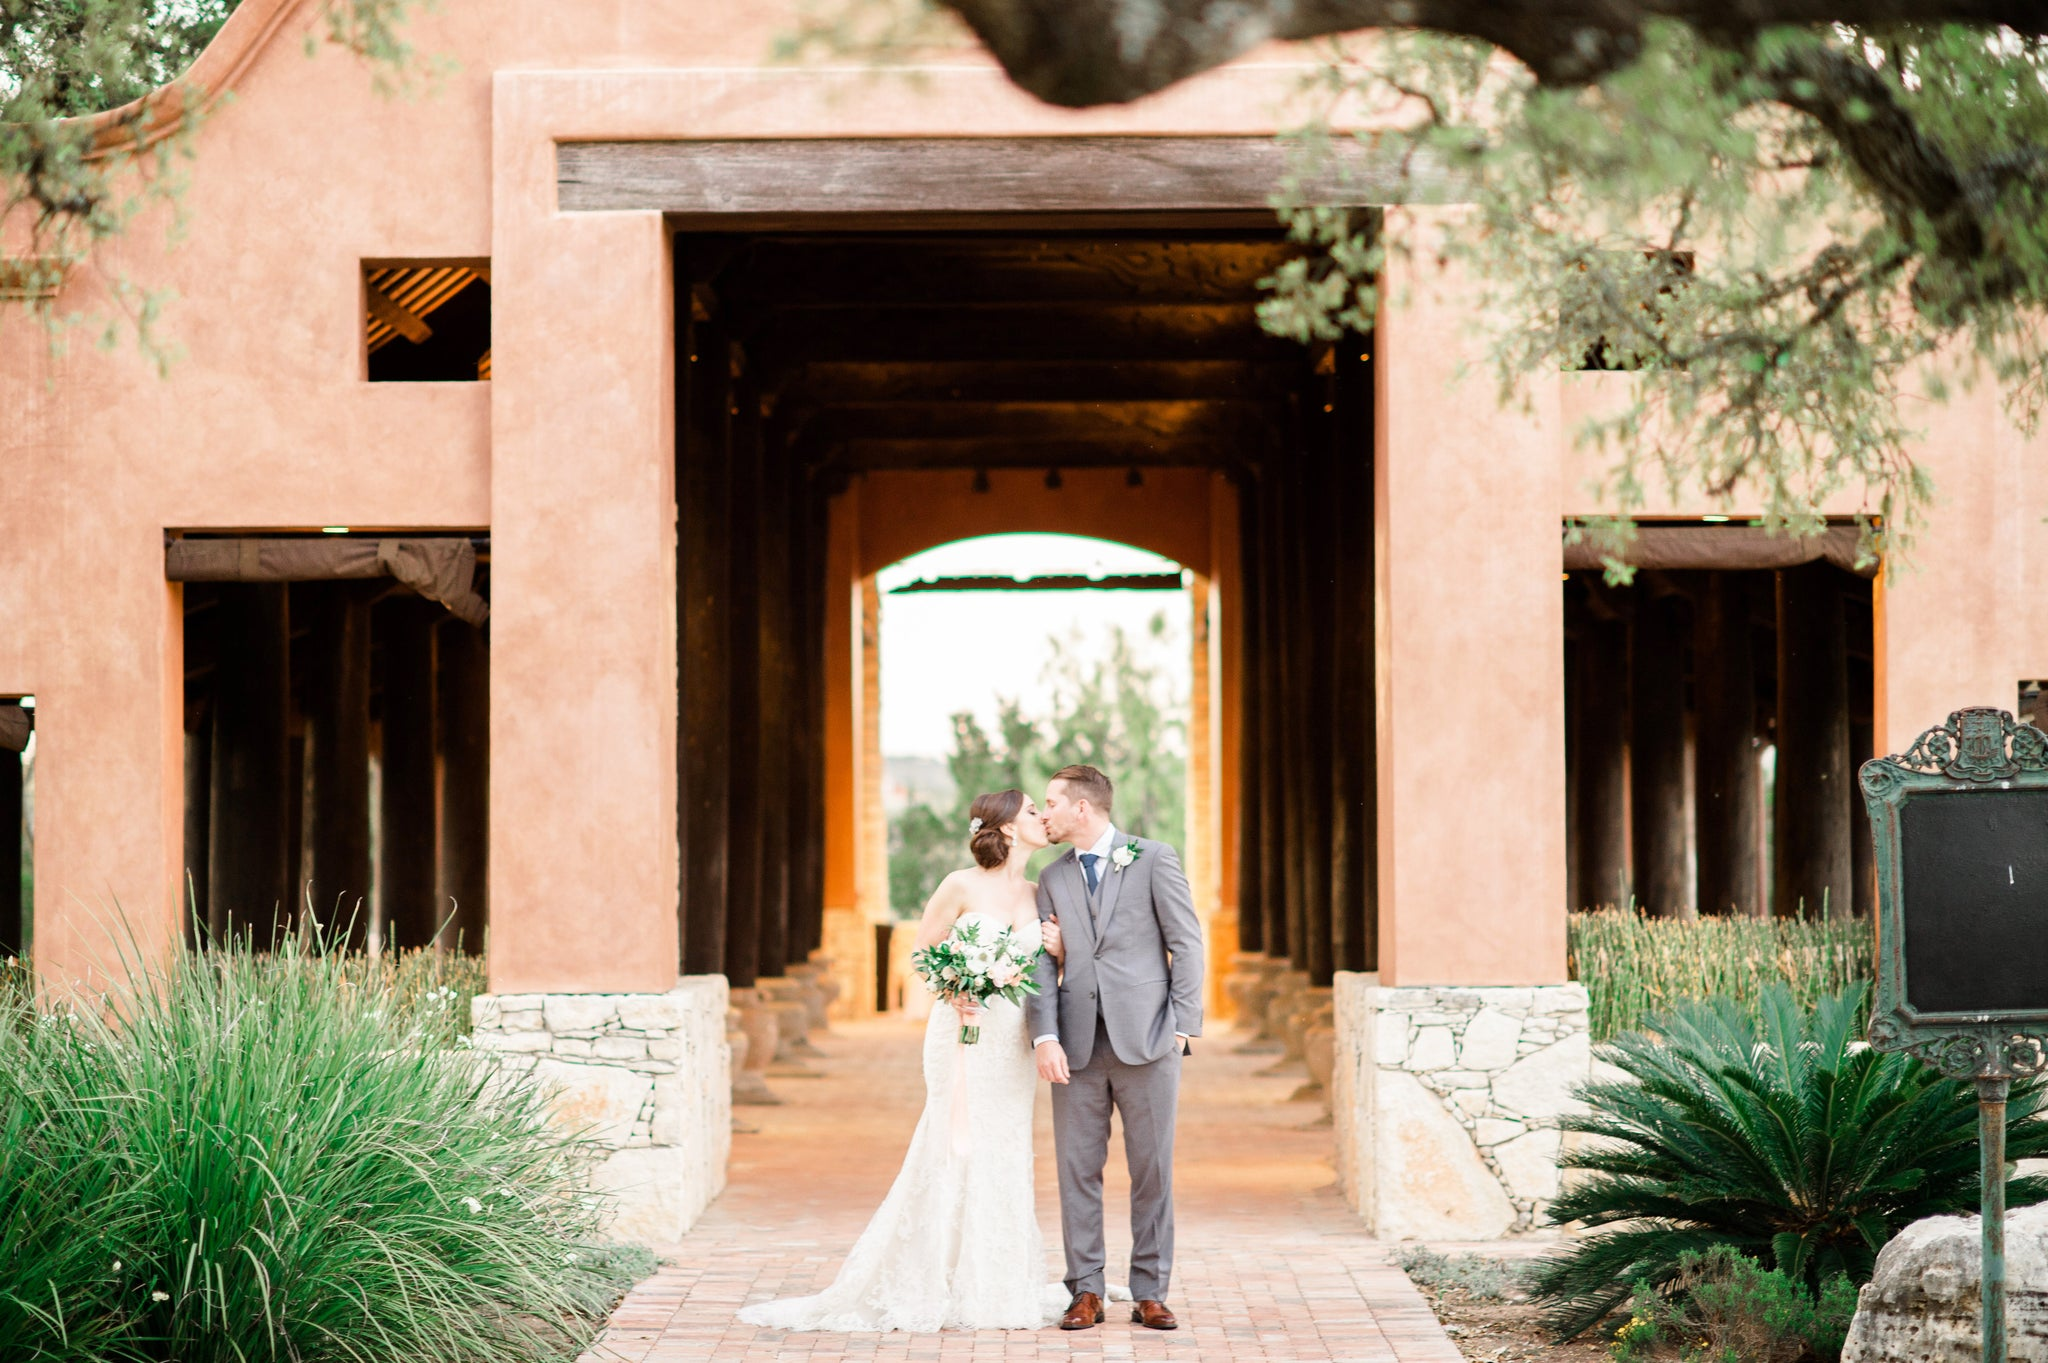 Add a Second Photographer - Lindsey Mueller Photography